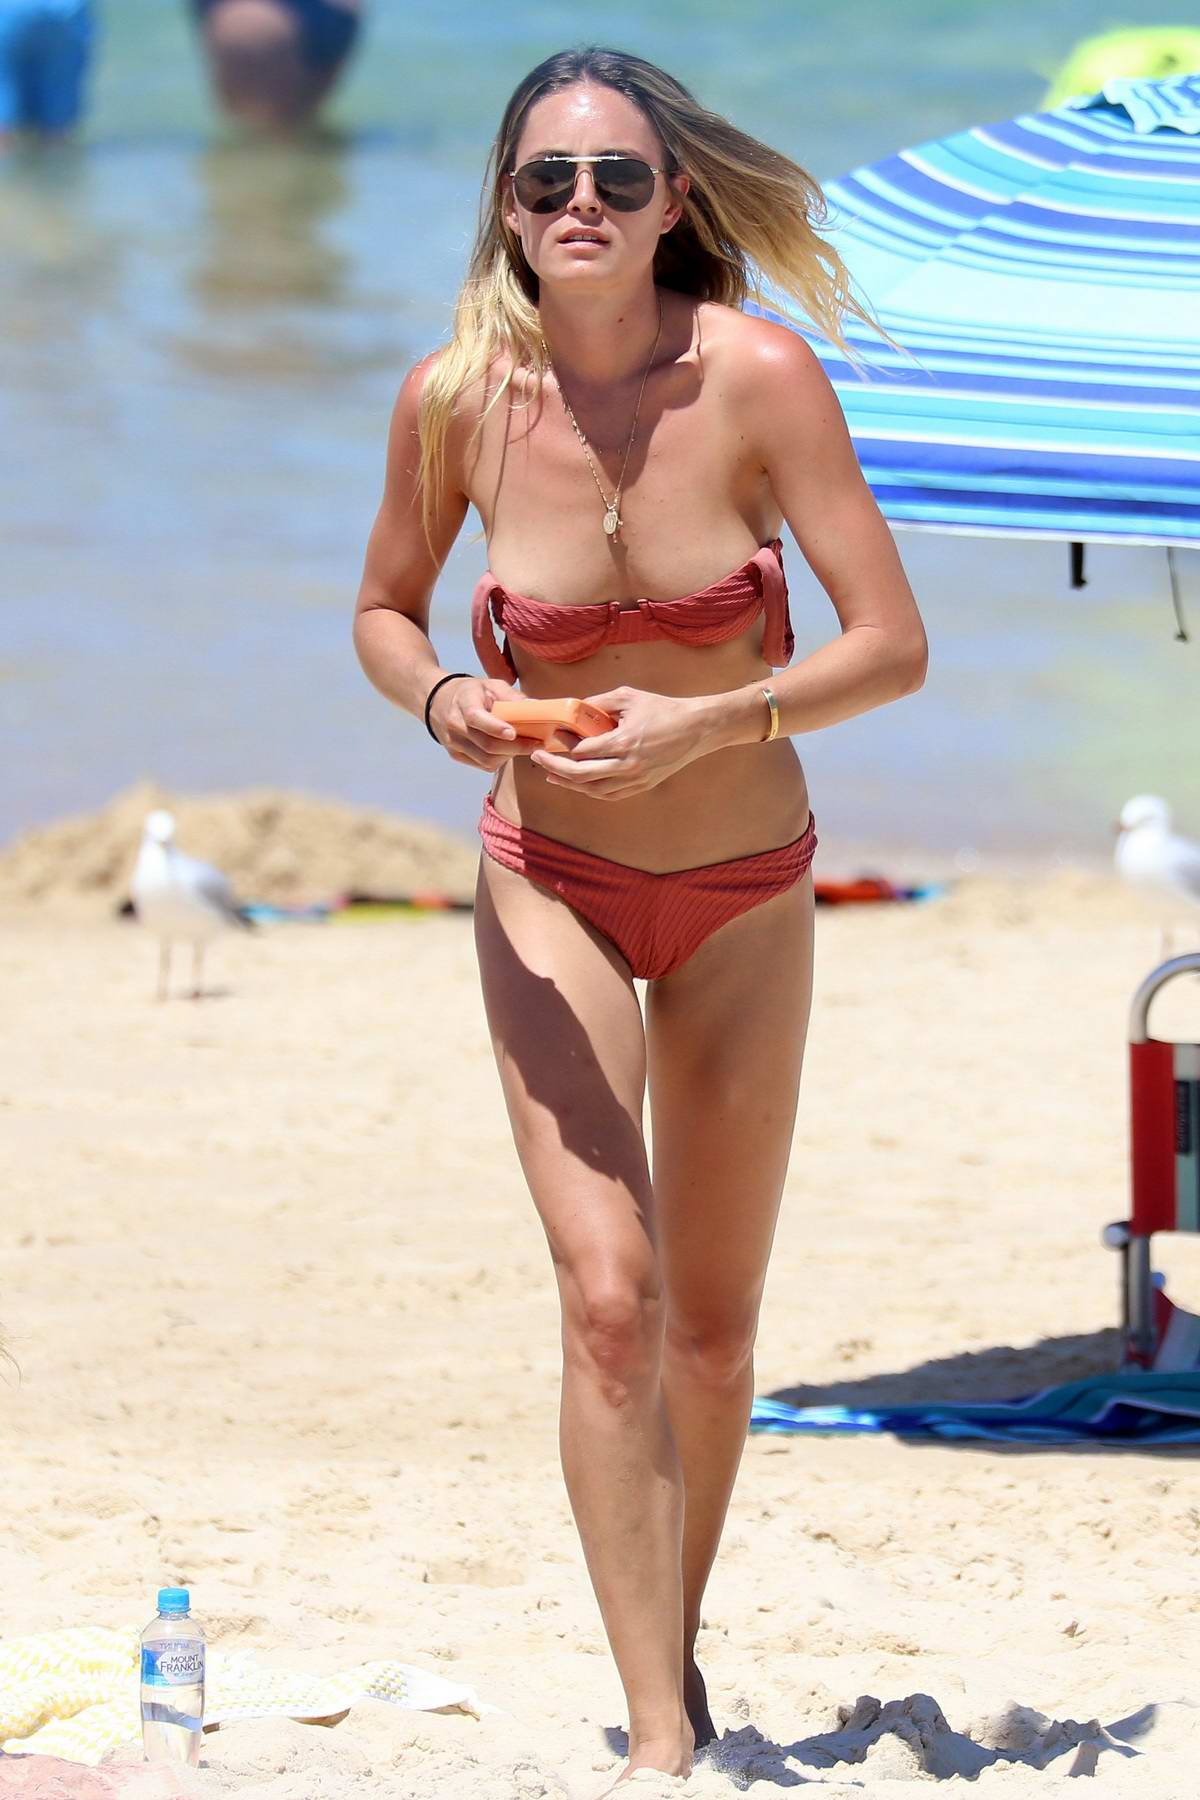 Kendal Lee Schuler spends a hot summers day in a bikini at Bondi beach, Sydney, Australia